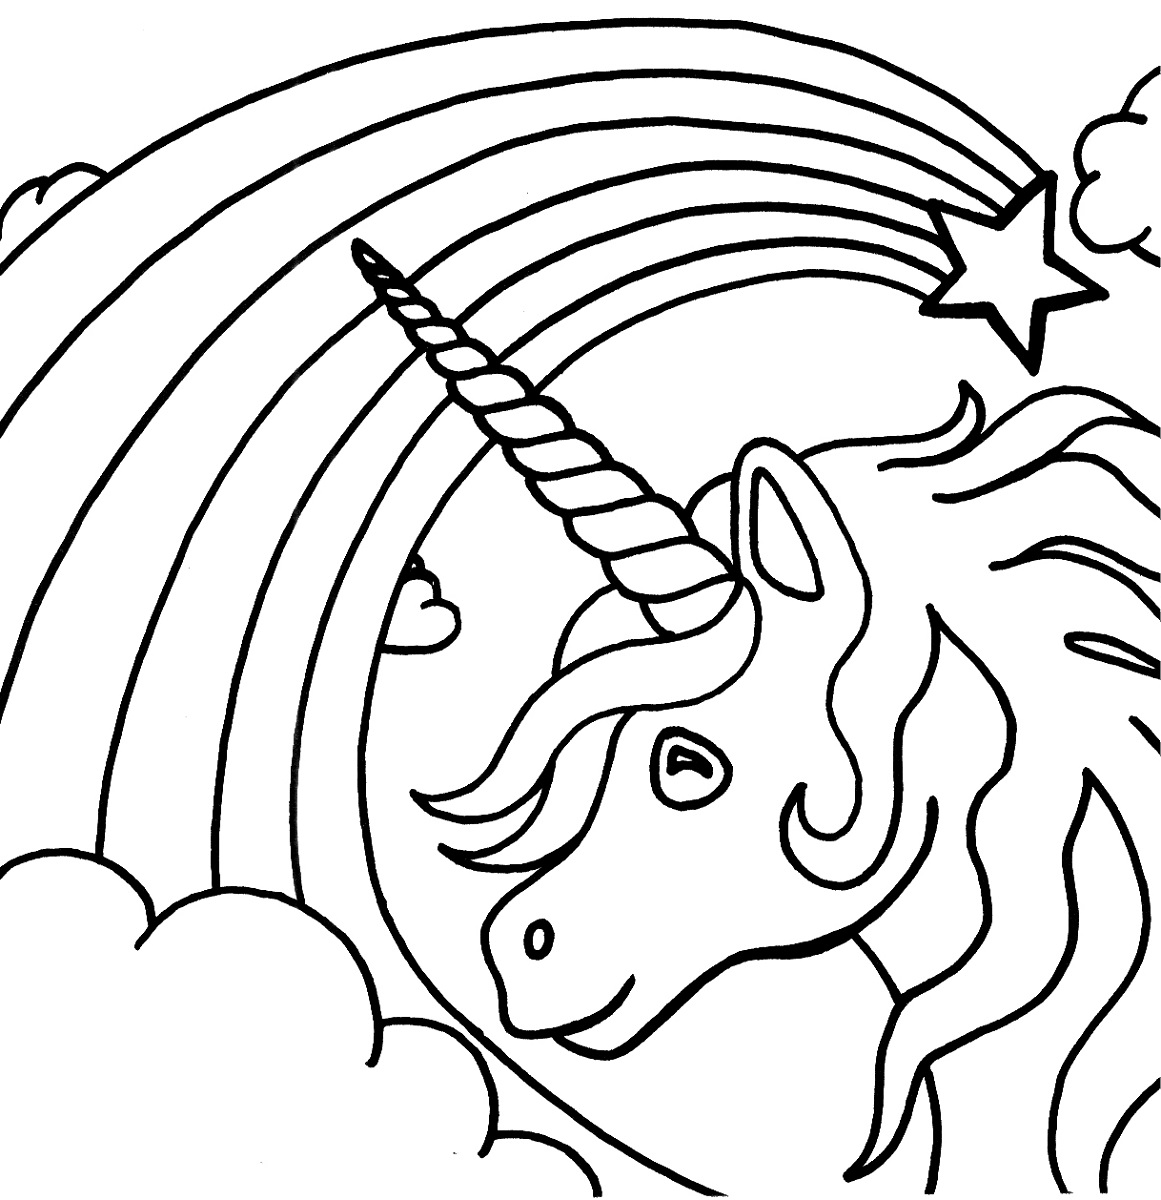 1161x1200 Crafty Free Unicorn Coloring Pages Color For Kids Activity Shelter